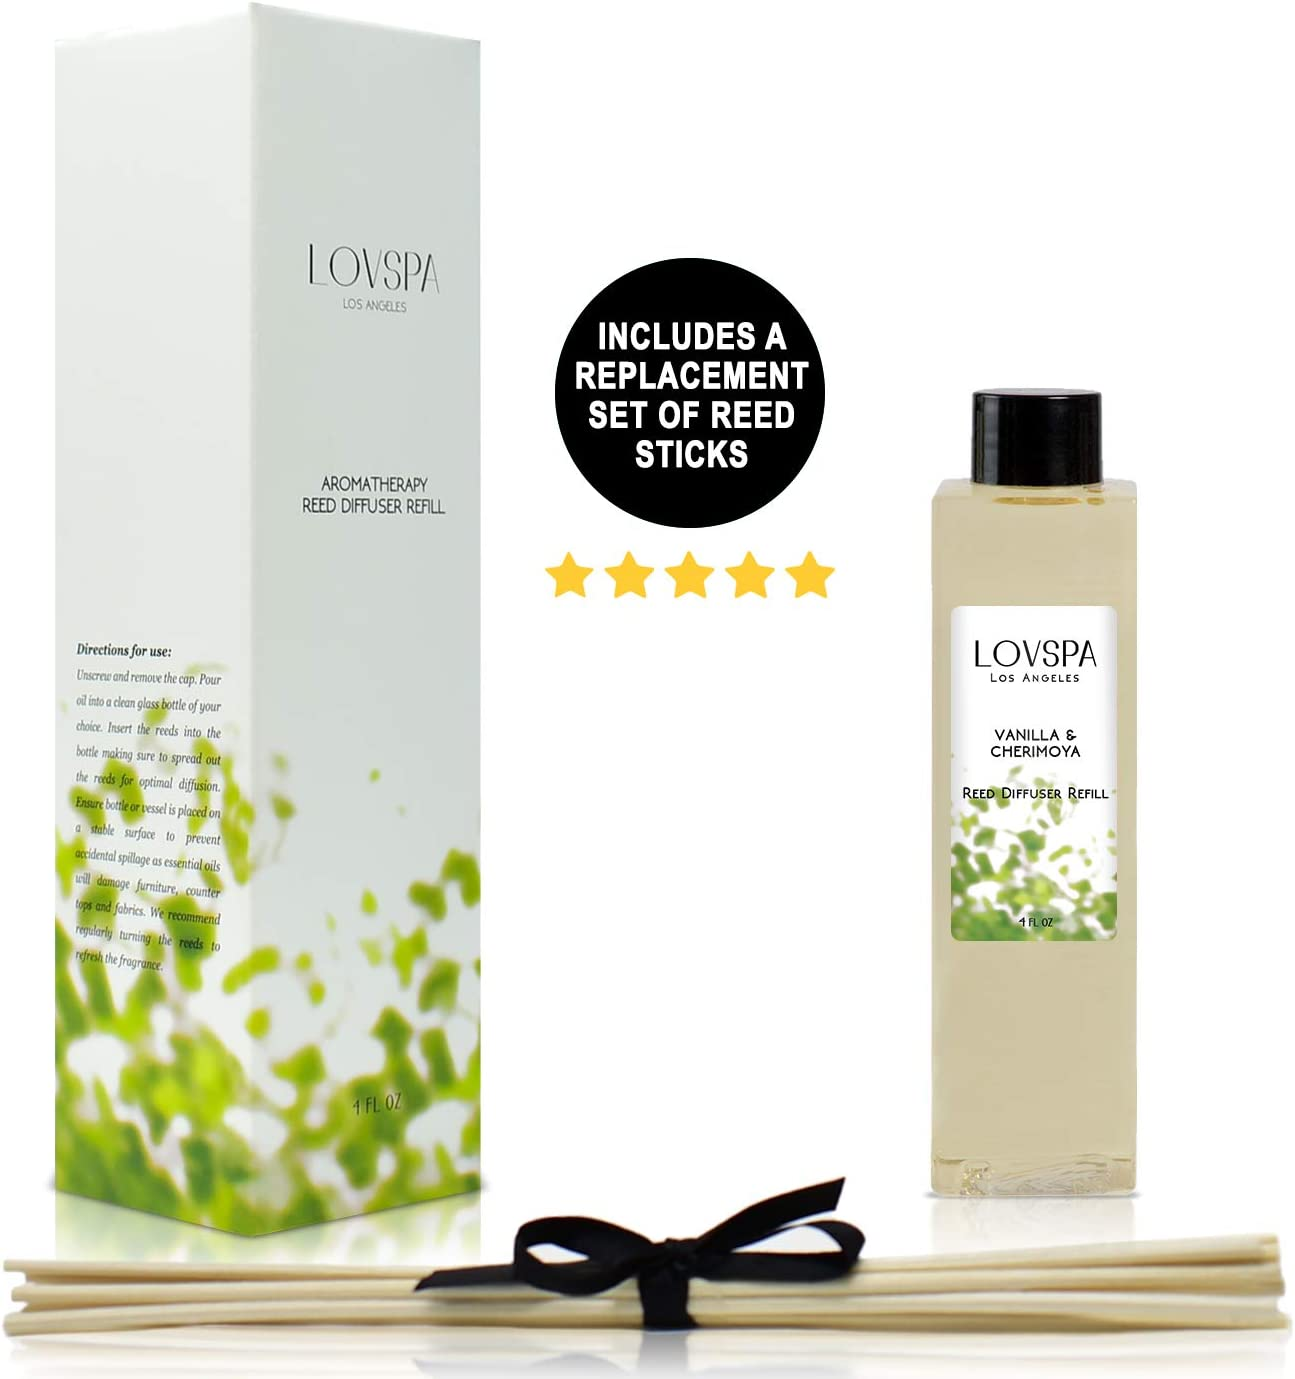 LOVSPA Vanilla & Cherimoya Reed Diffuser Refill Oil with Replacement Reed Sticks - Great Scent for Kitchen or Bathroom, 4 oz - Made in The USA